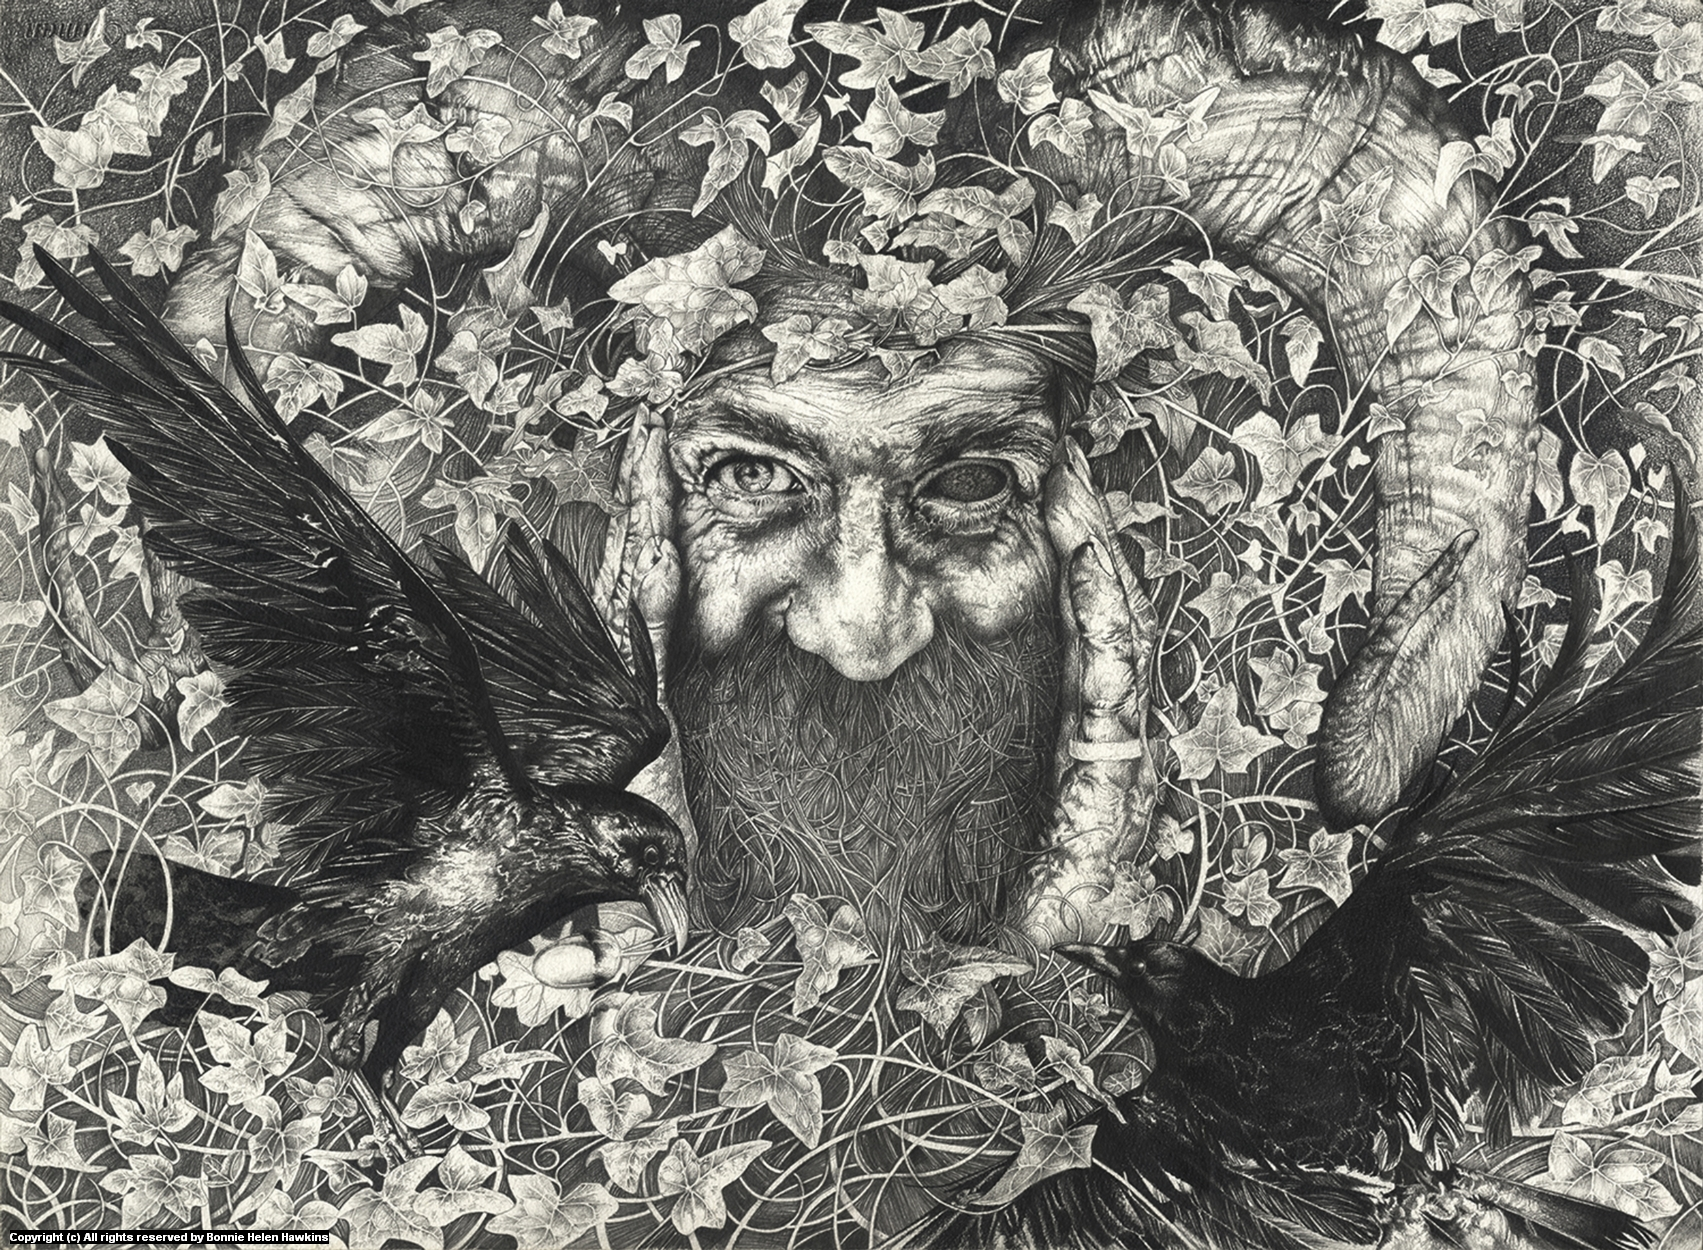 Odin Artwork by Bonnie Helen Hawkins